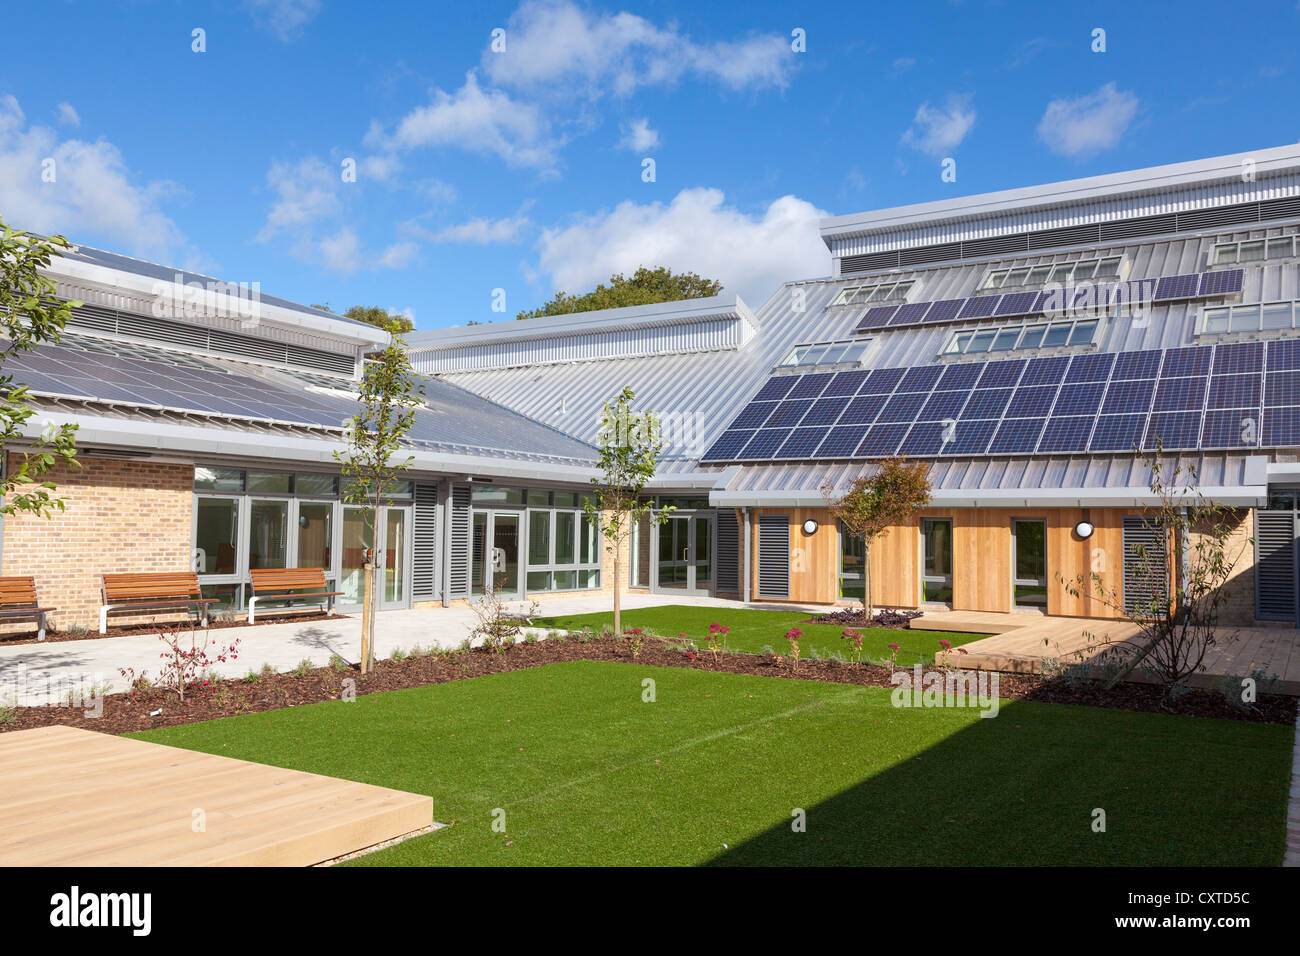 Courtyard of new build primary school with solar panels in sunshine. - Stock Image